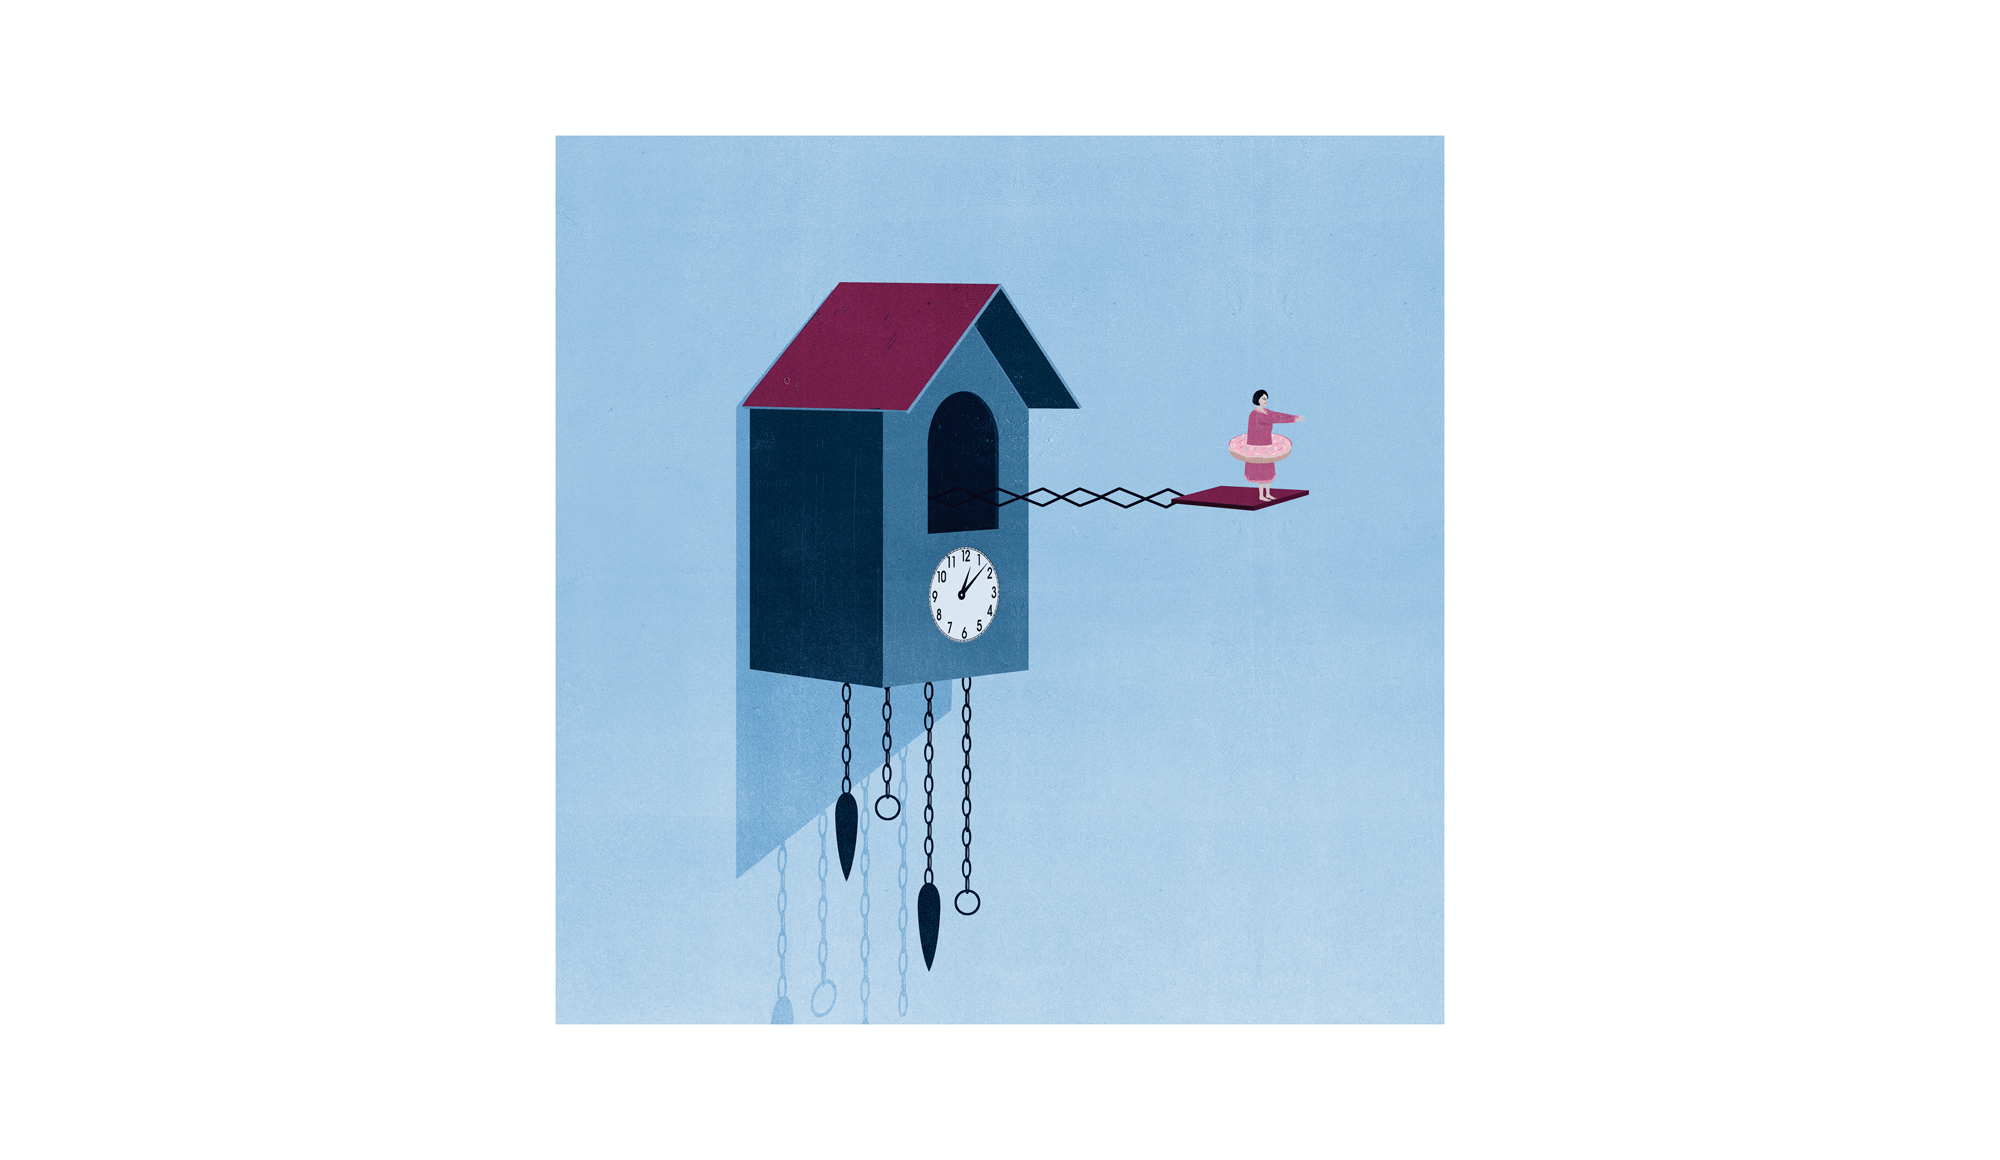 Illustration: woman sleepwalking on cuckoo clock